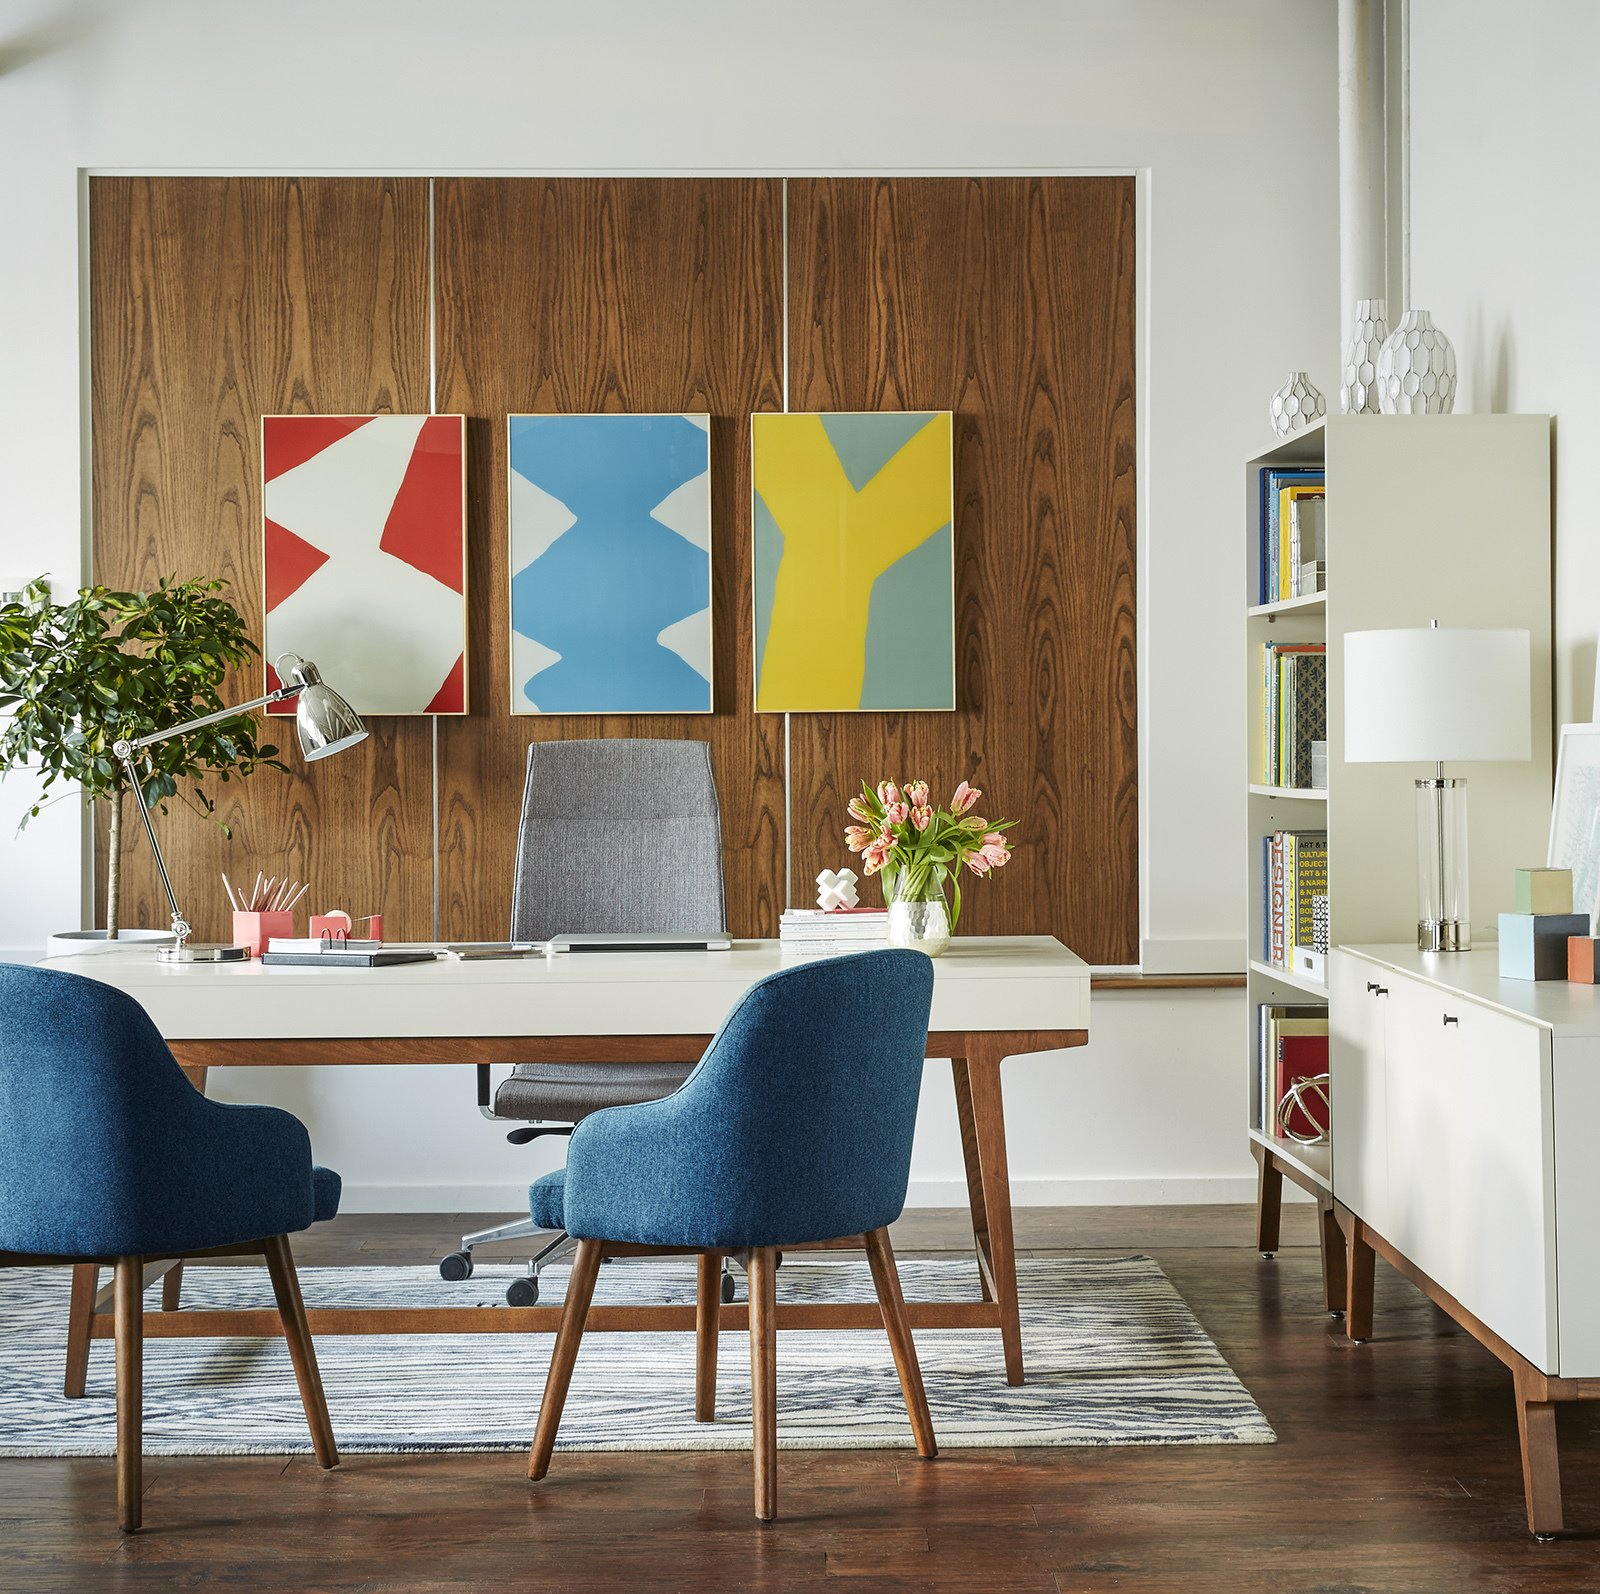 """""""Smart adaptable design encourages creativity, communication, teamwork and productivity,"""" Hannoosh says.""""  Photo 6 of 9 in These Modern Workspaces Are Just As Welcoming as Your Living Room"""